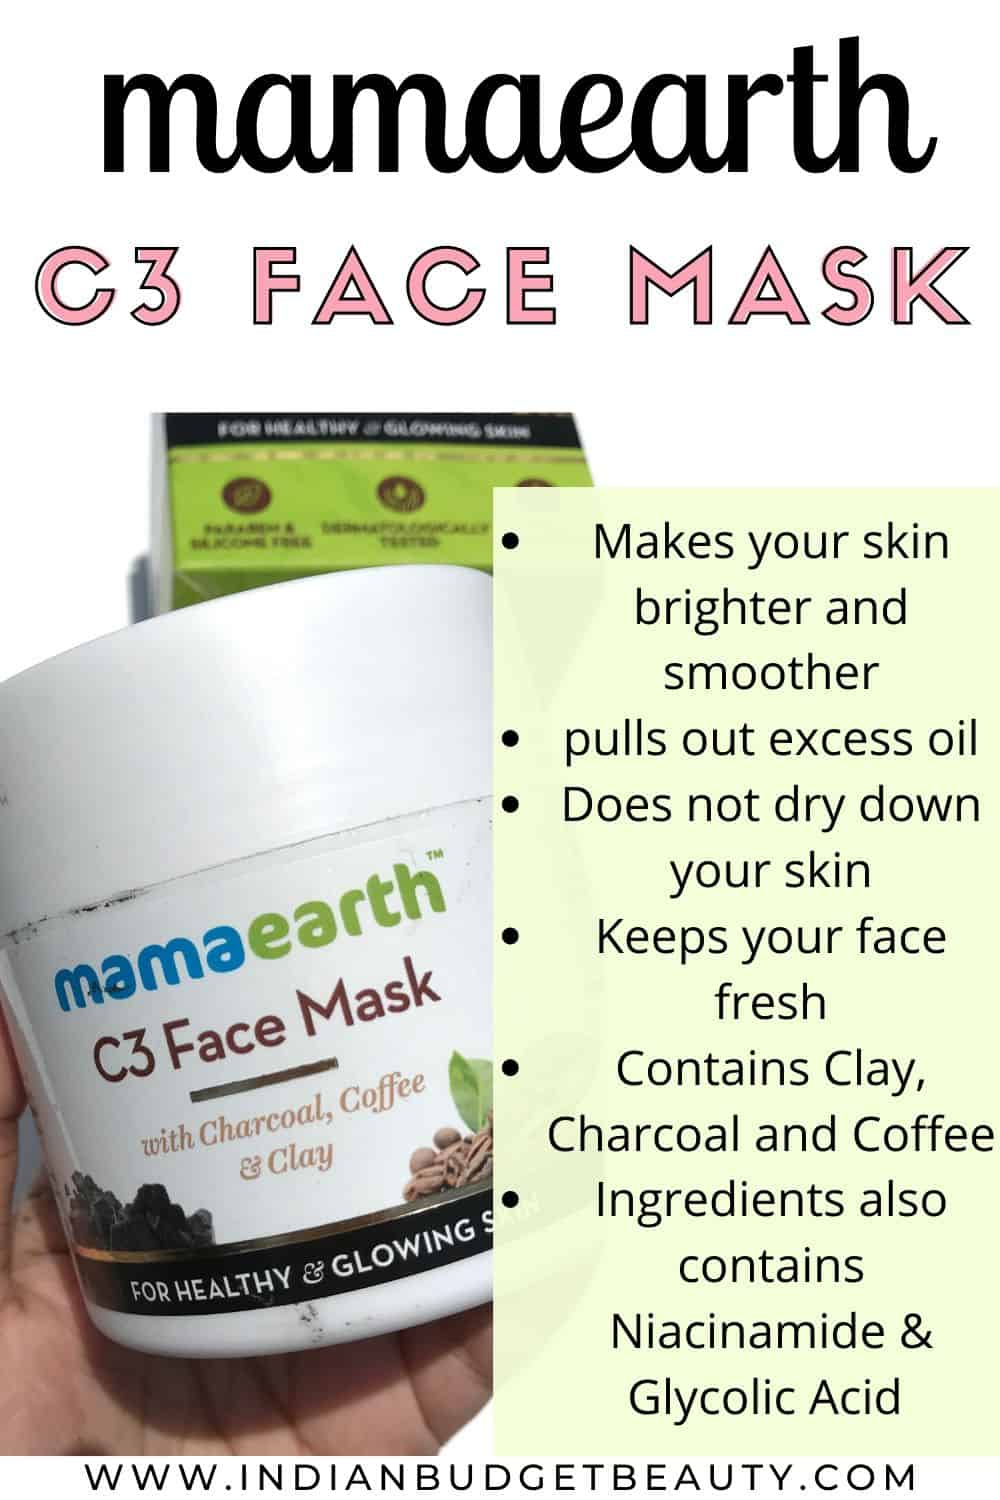 mamaearth c3 face mask review